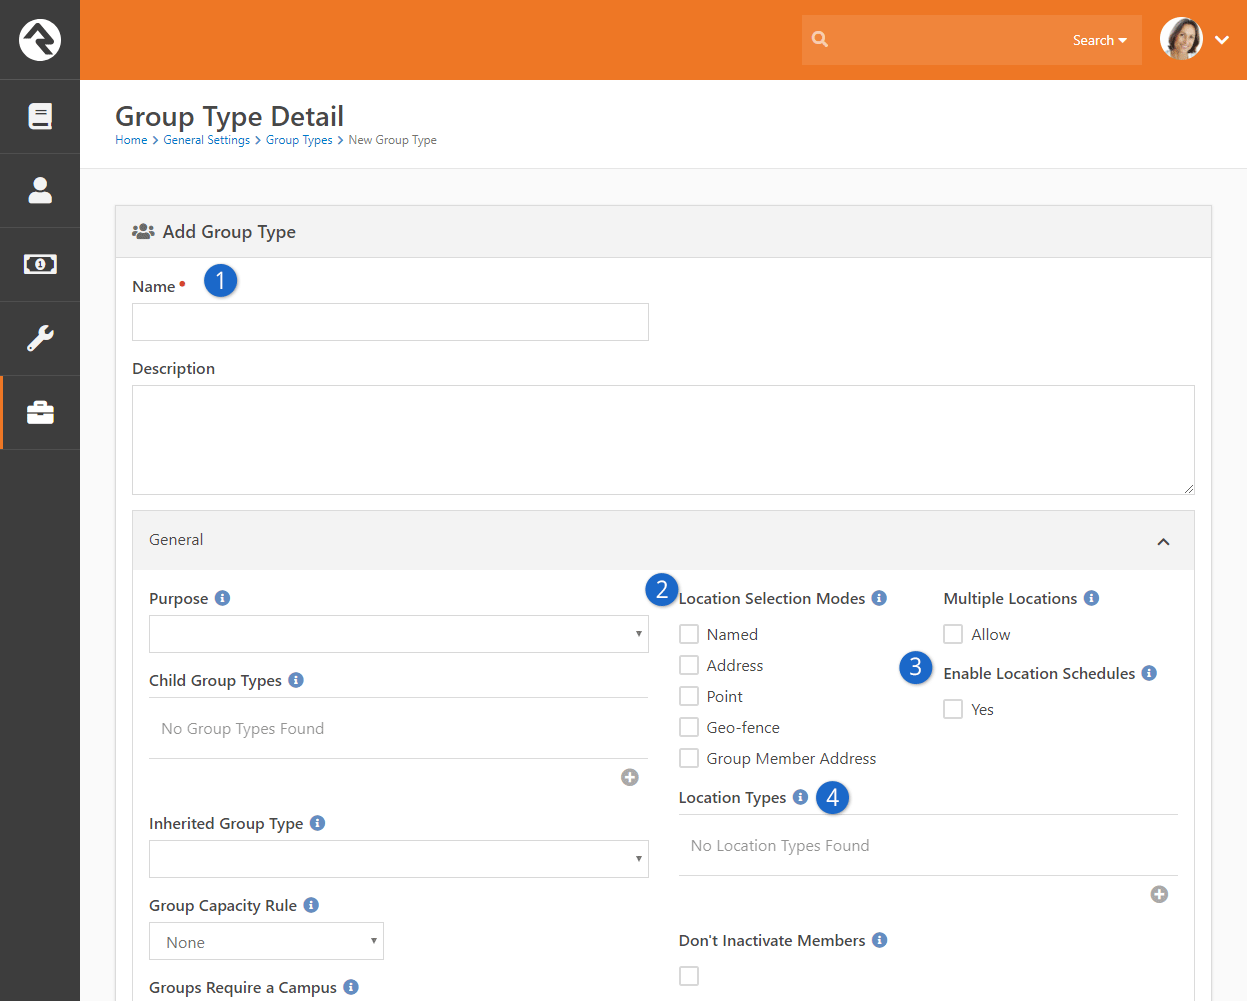 Configuring A New Group Type For Checkin